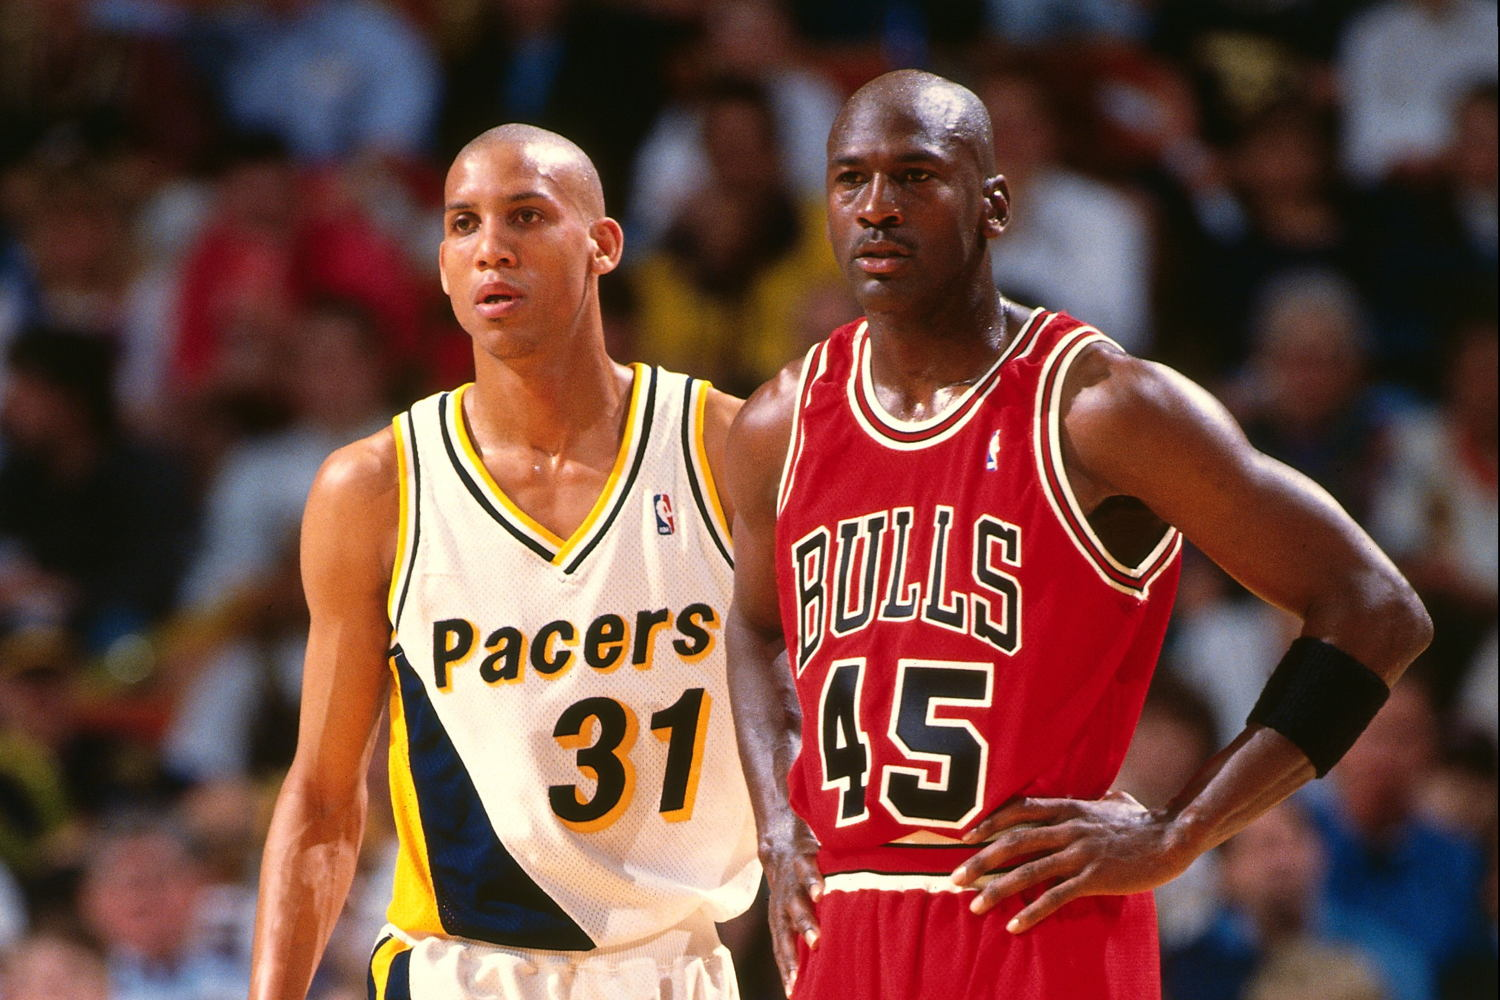 Top 10 Three Pointers In NBA History